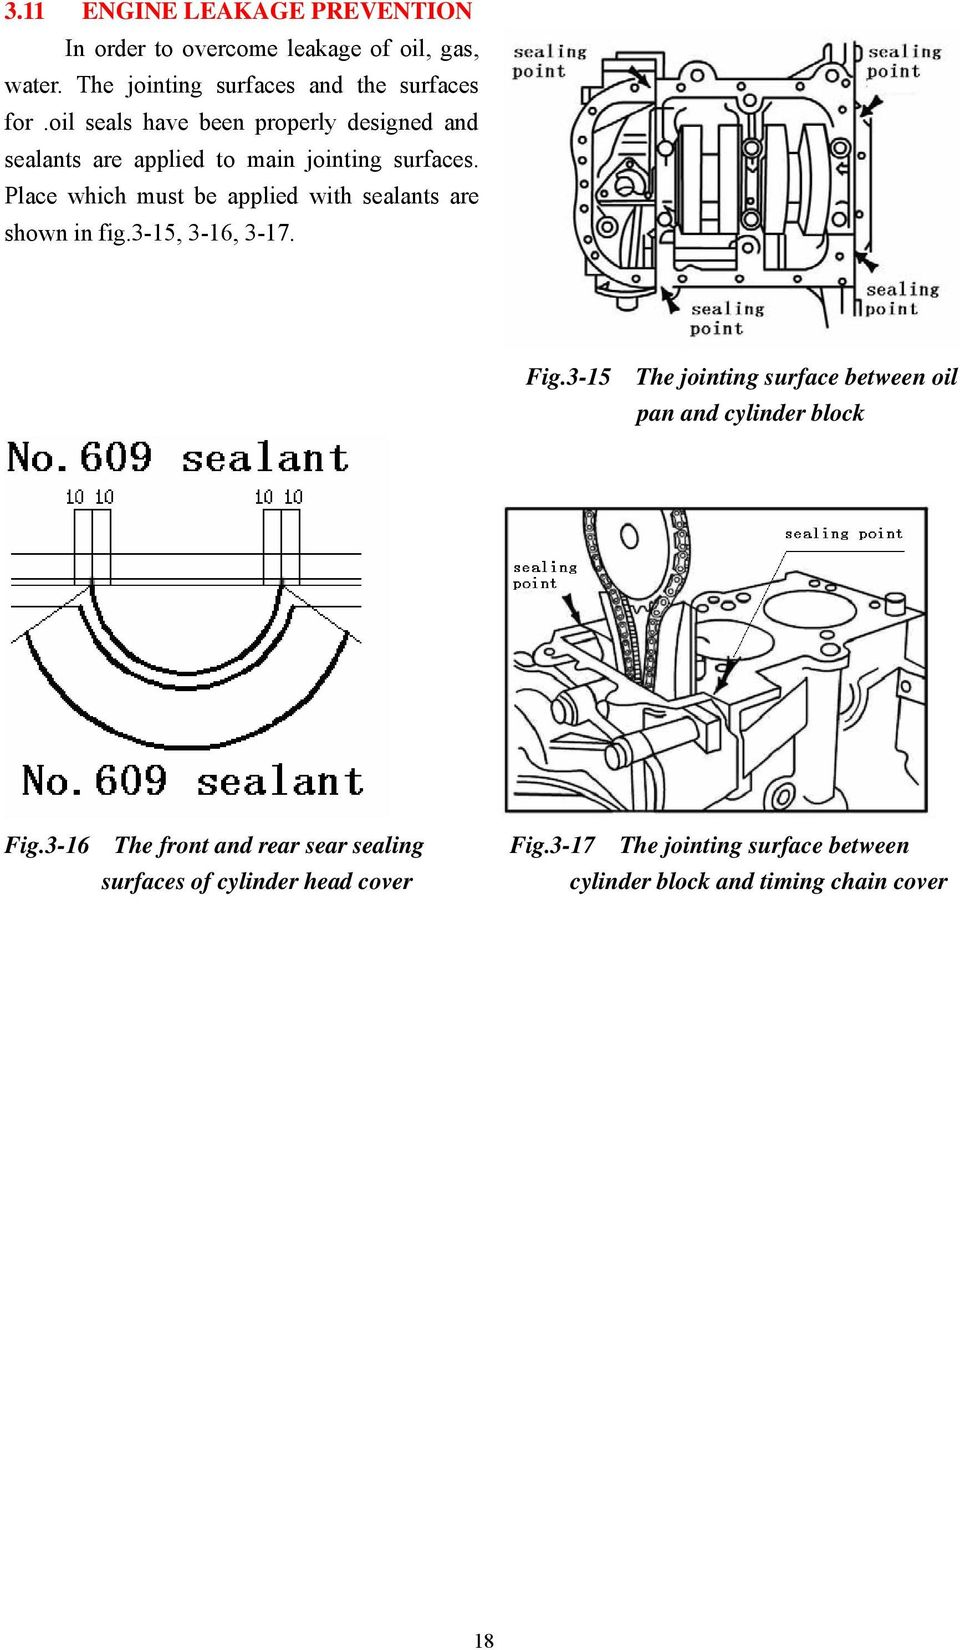 Place which must be applied with sealants are shown in fig.3-15, 3-16, 3-17. Fig.